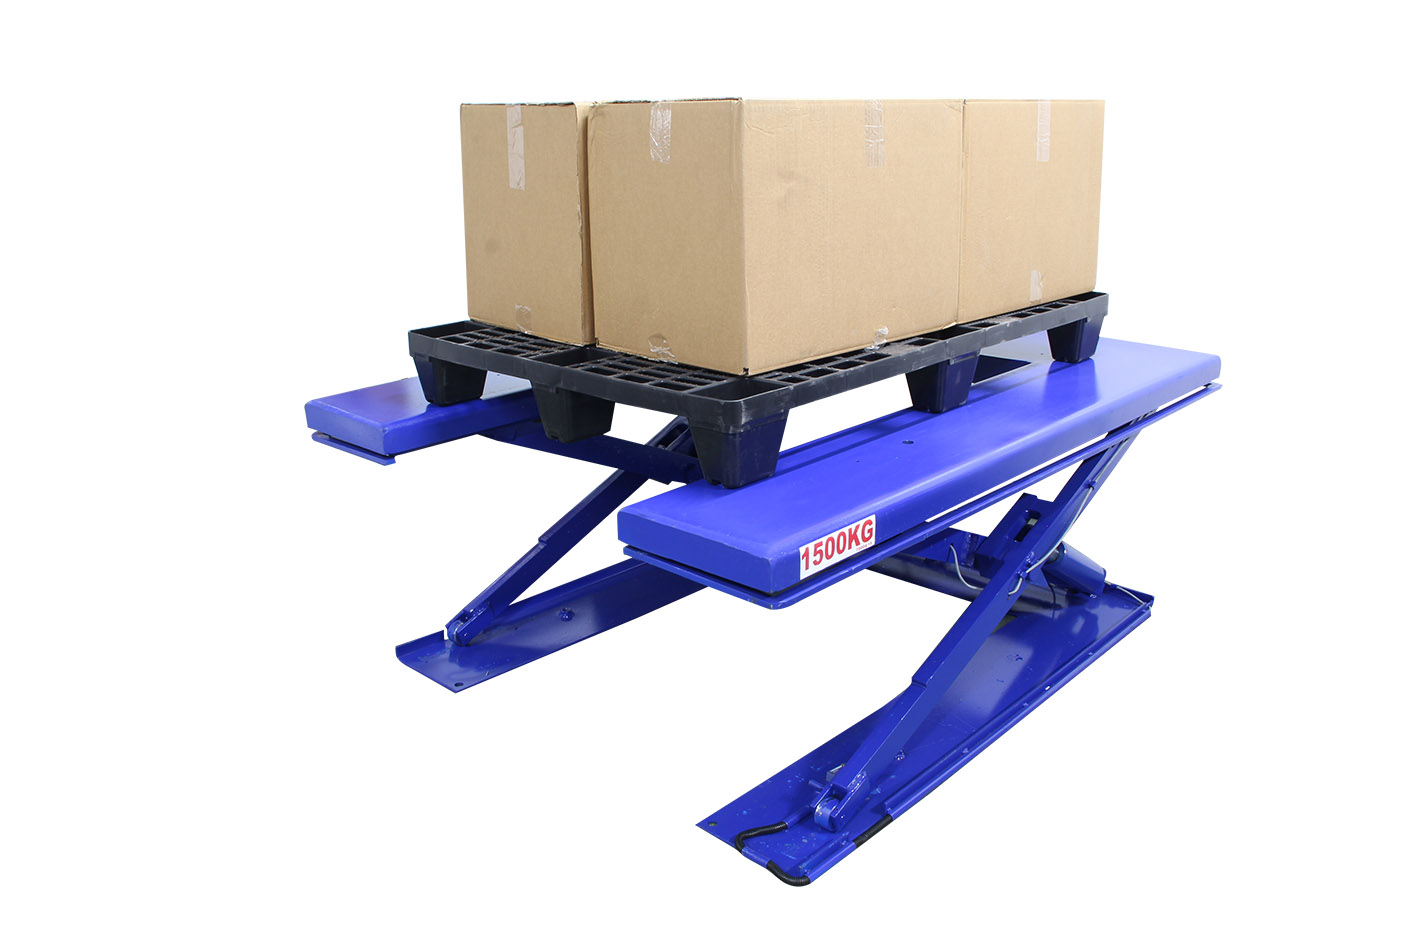 Adjustable Height Scale for Loading at Safe Working Heights